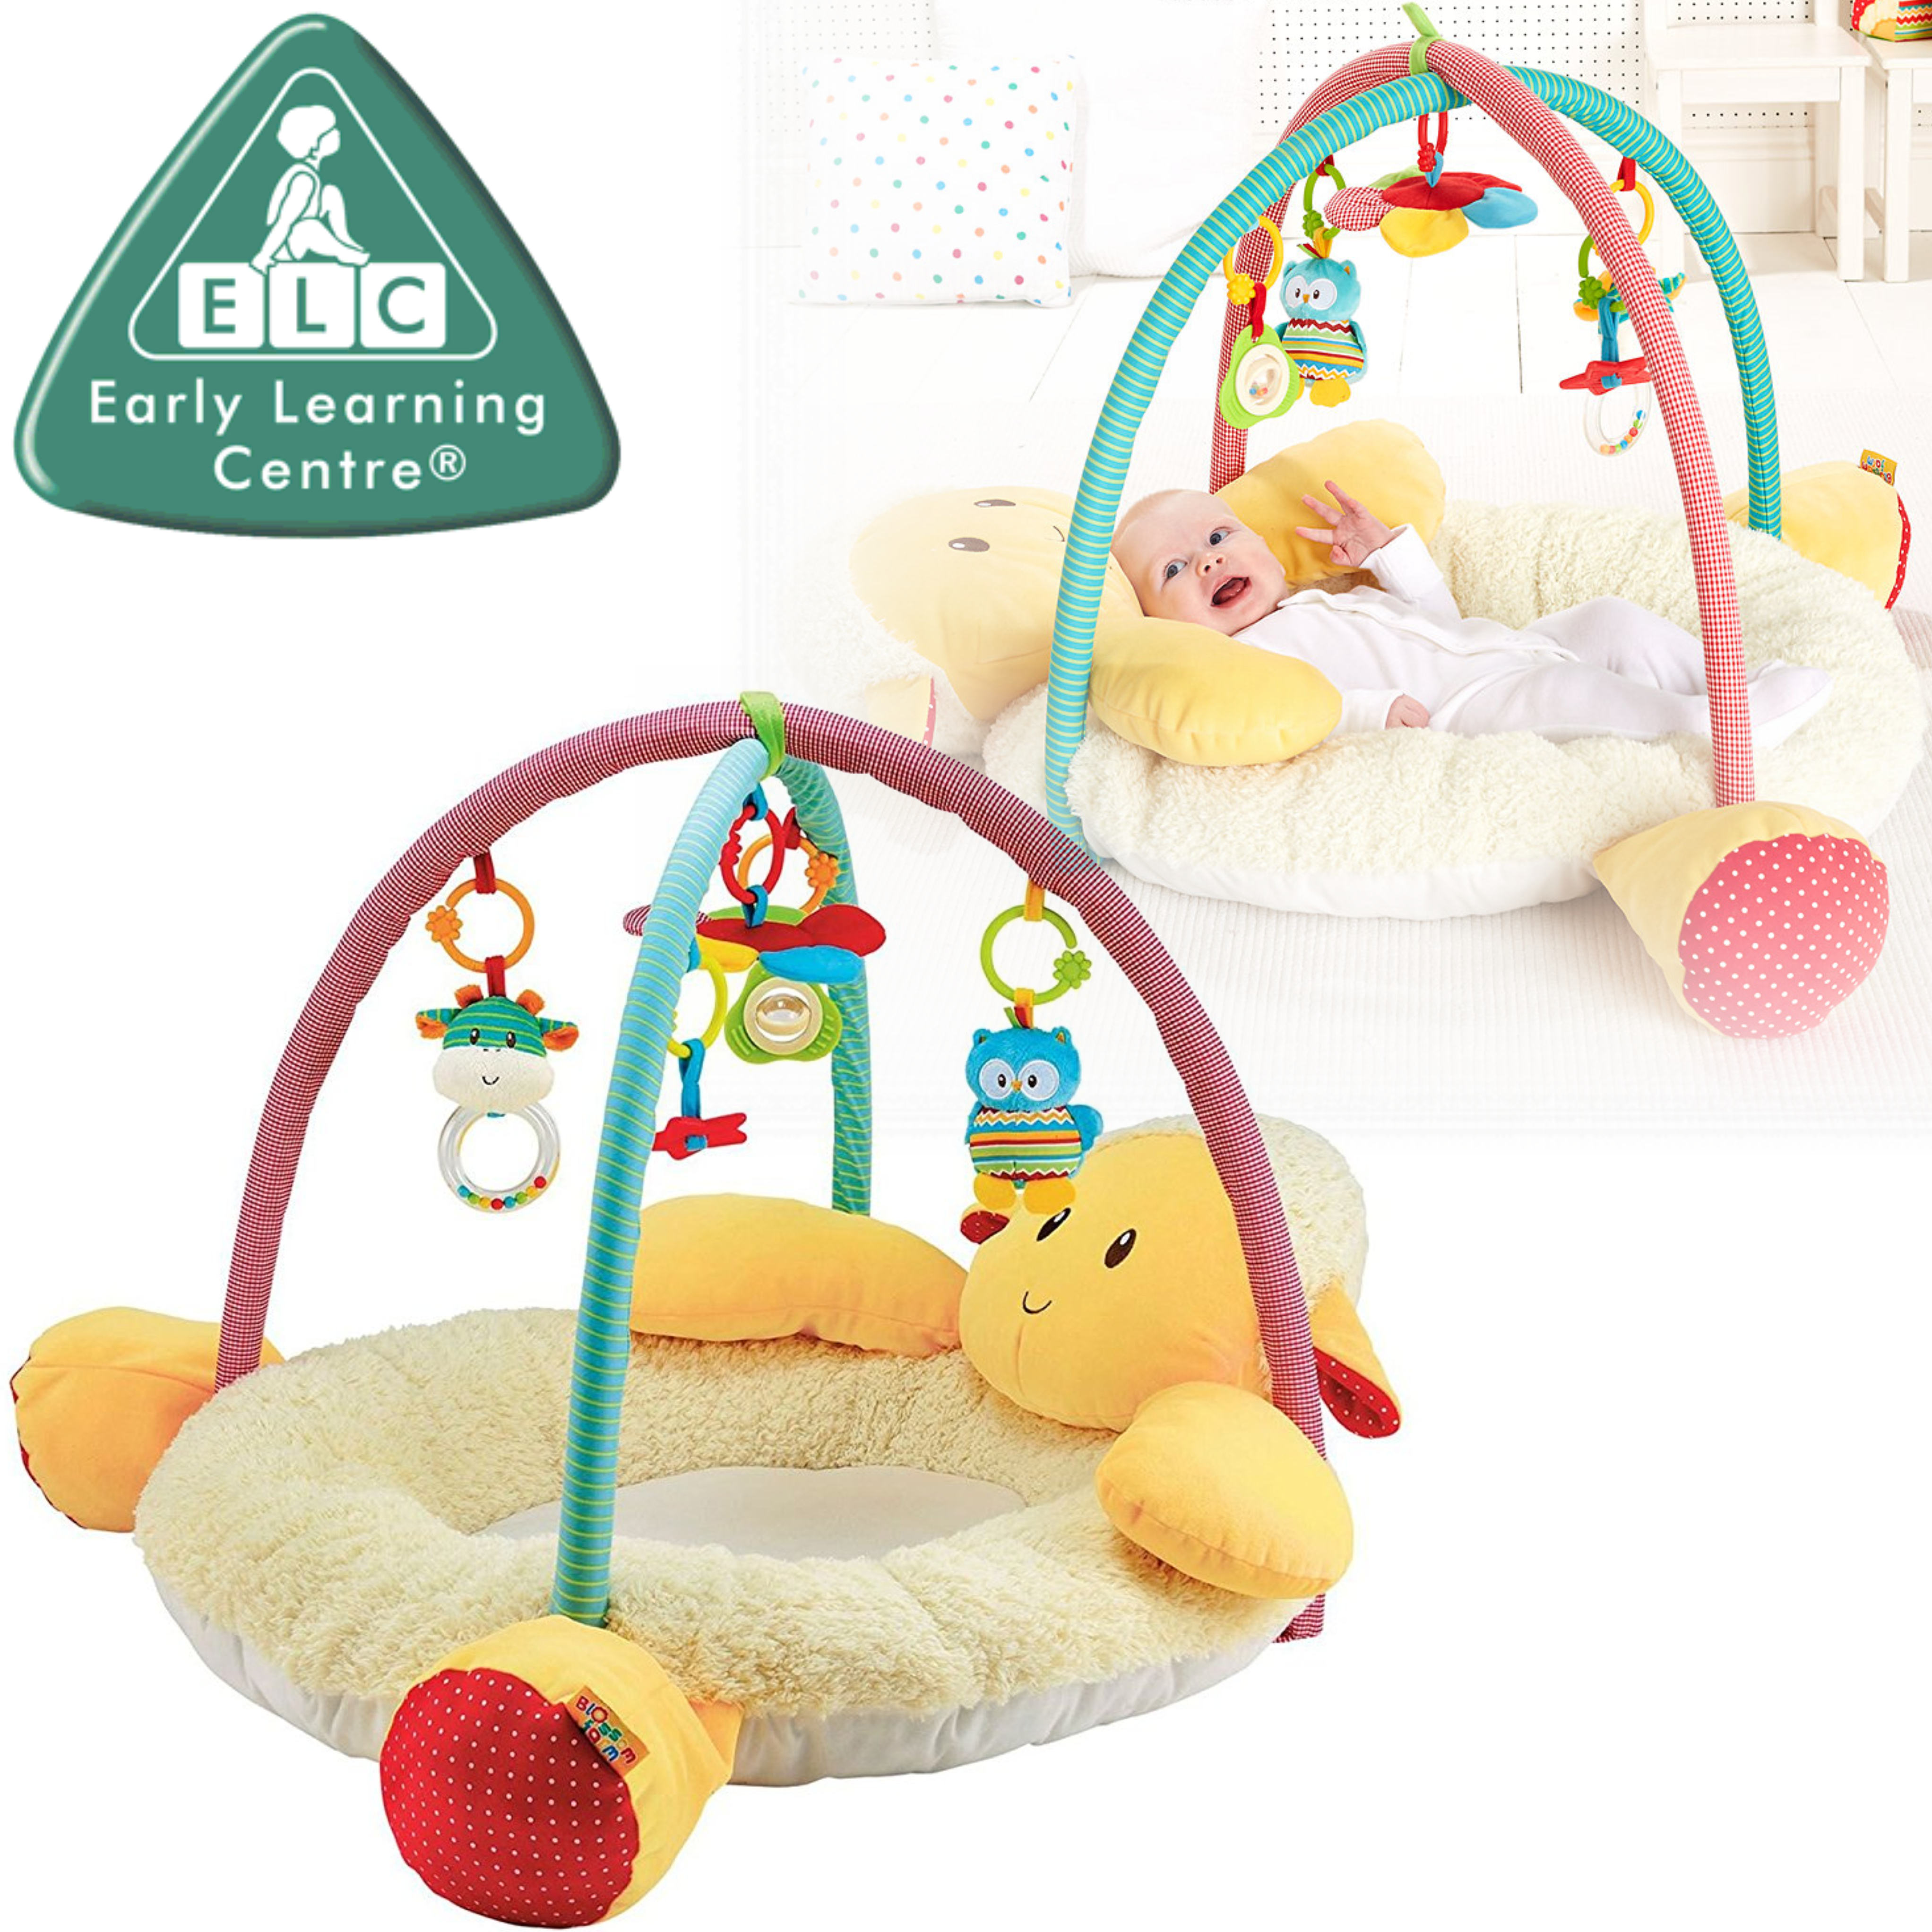 ELC Blossom Farm Snuggle Laurie Lamb Activity Gym | Kids Tummy Time Playmat+5 Toys